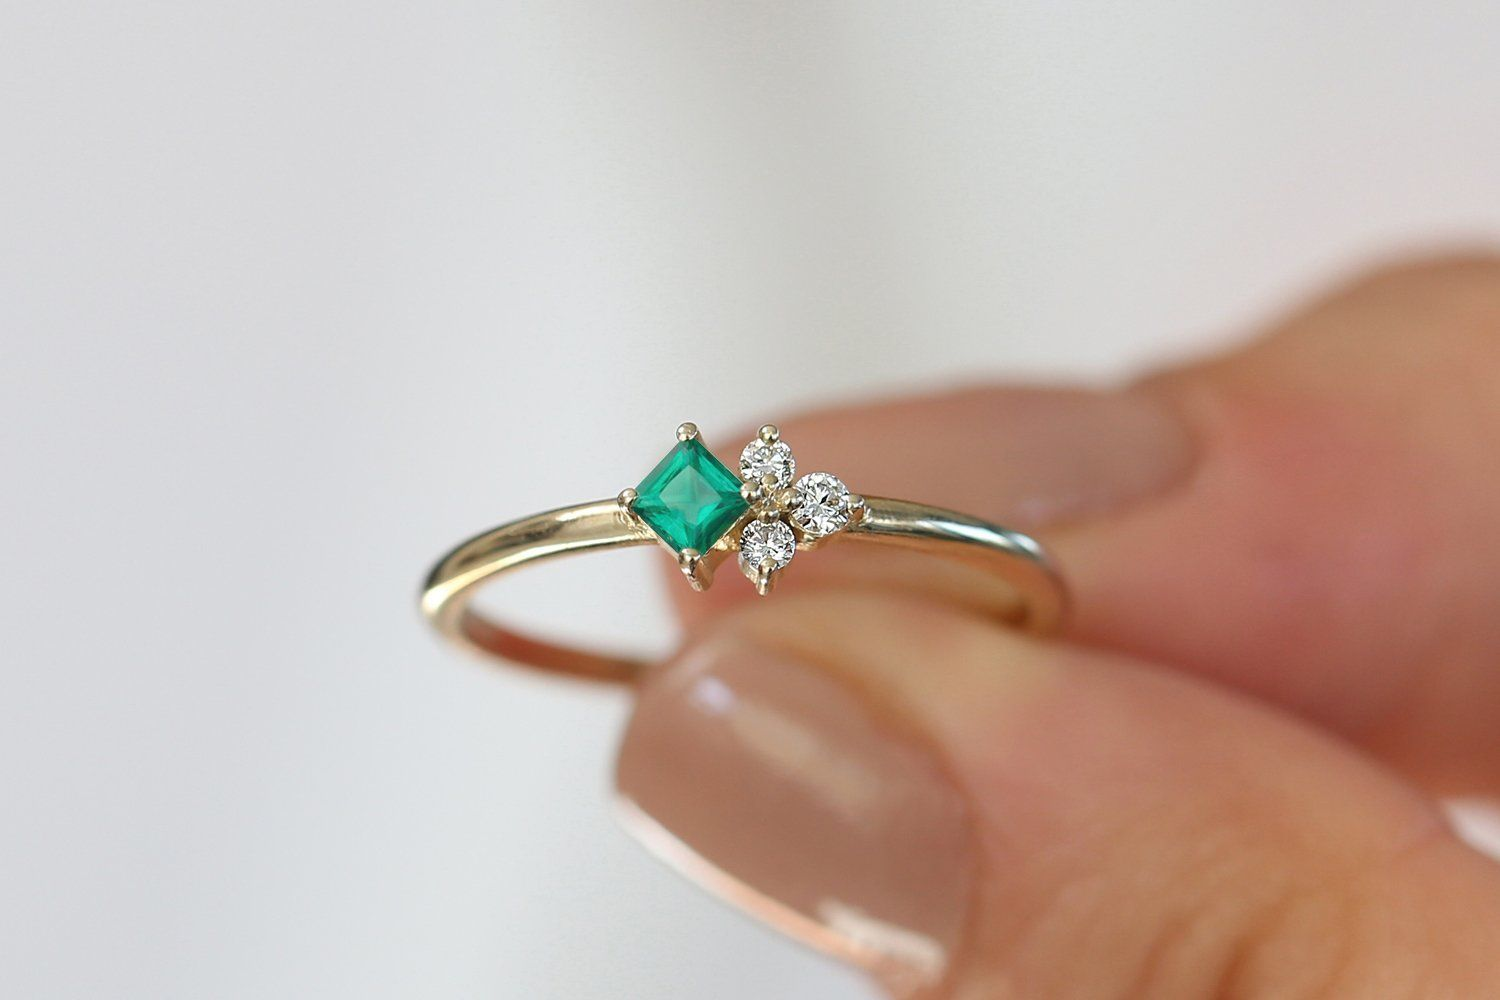 Details about  /Real 14KT Yellow Gold 1.00 Carat Stunning Round Cut Solitaire Women/'s Ring